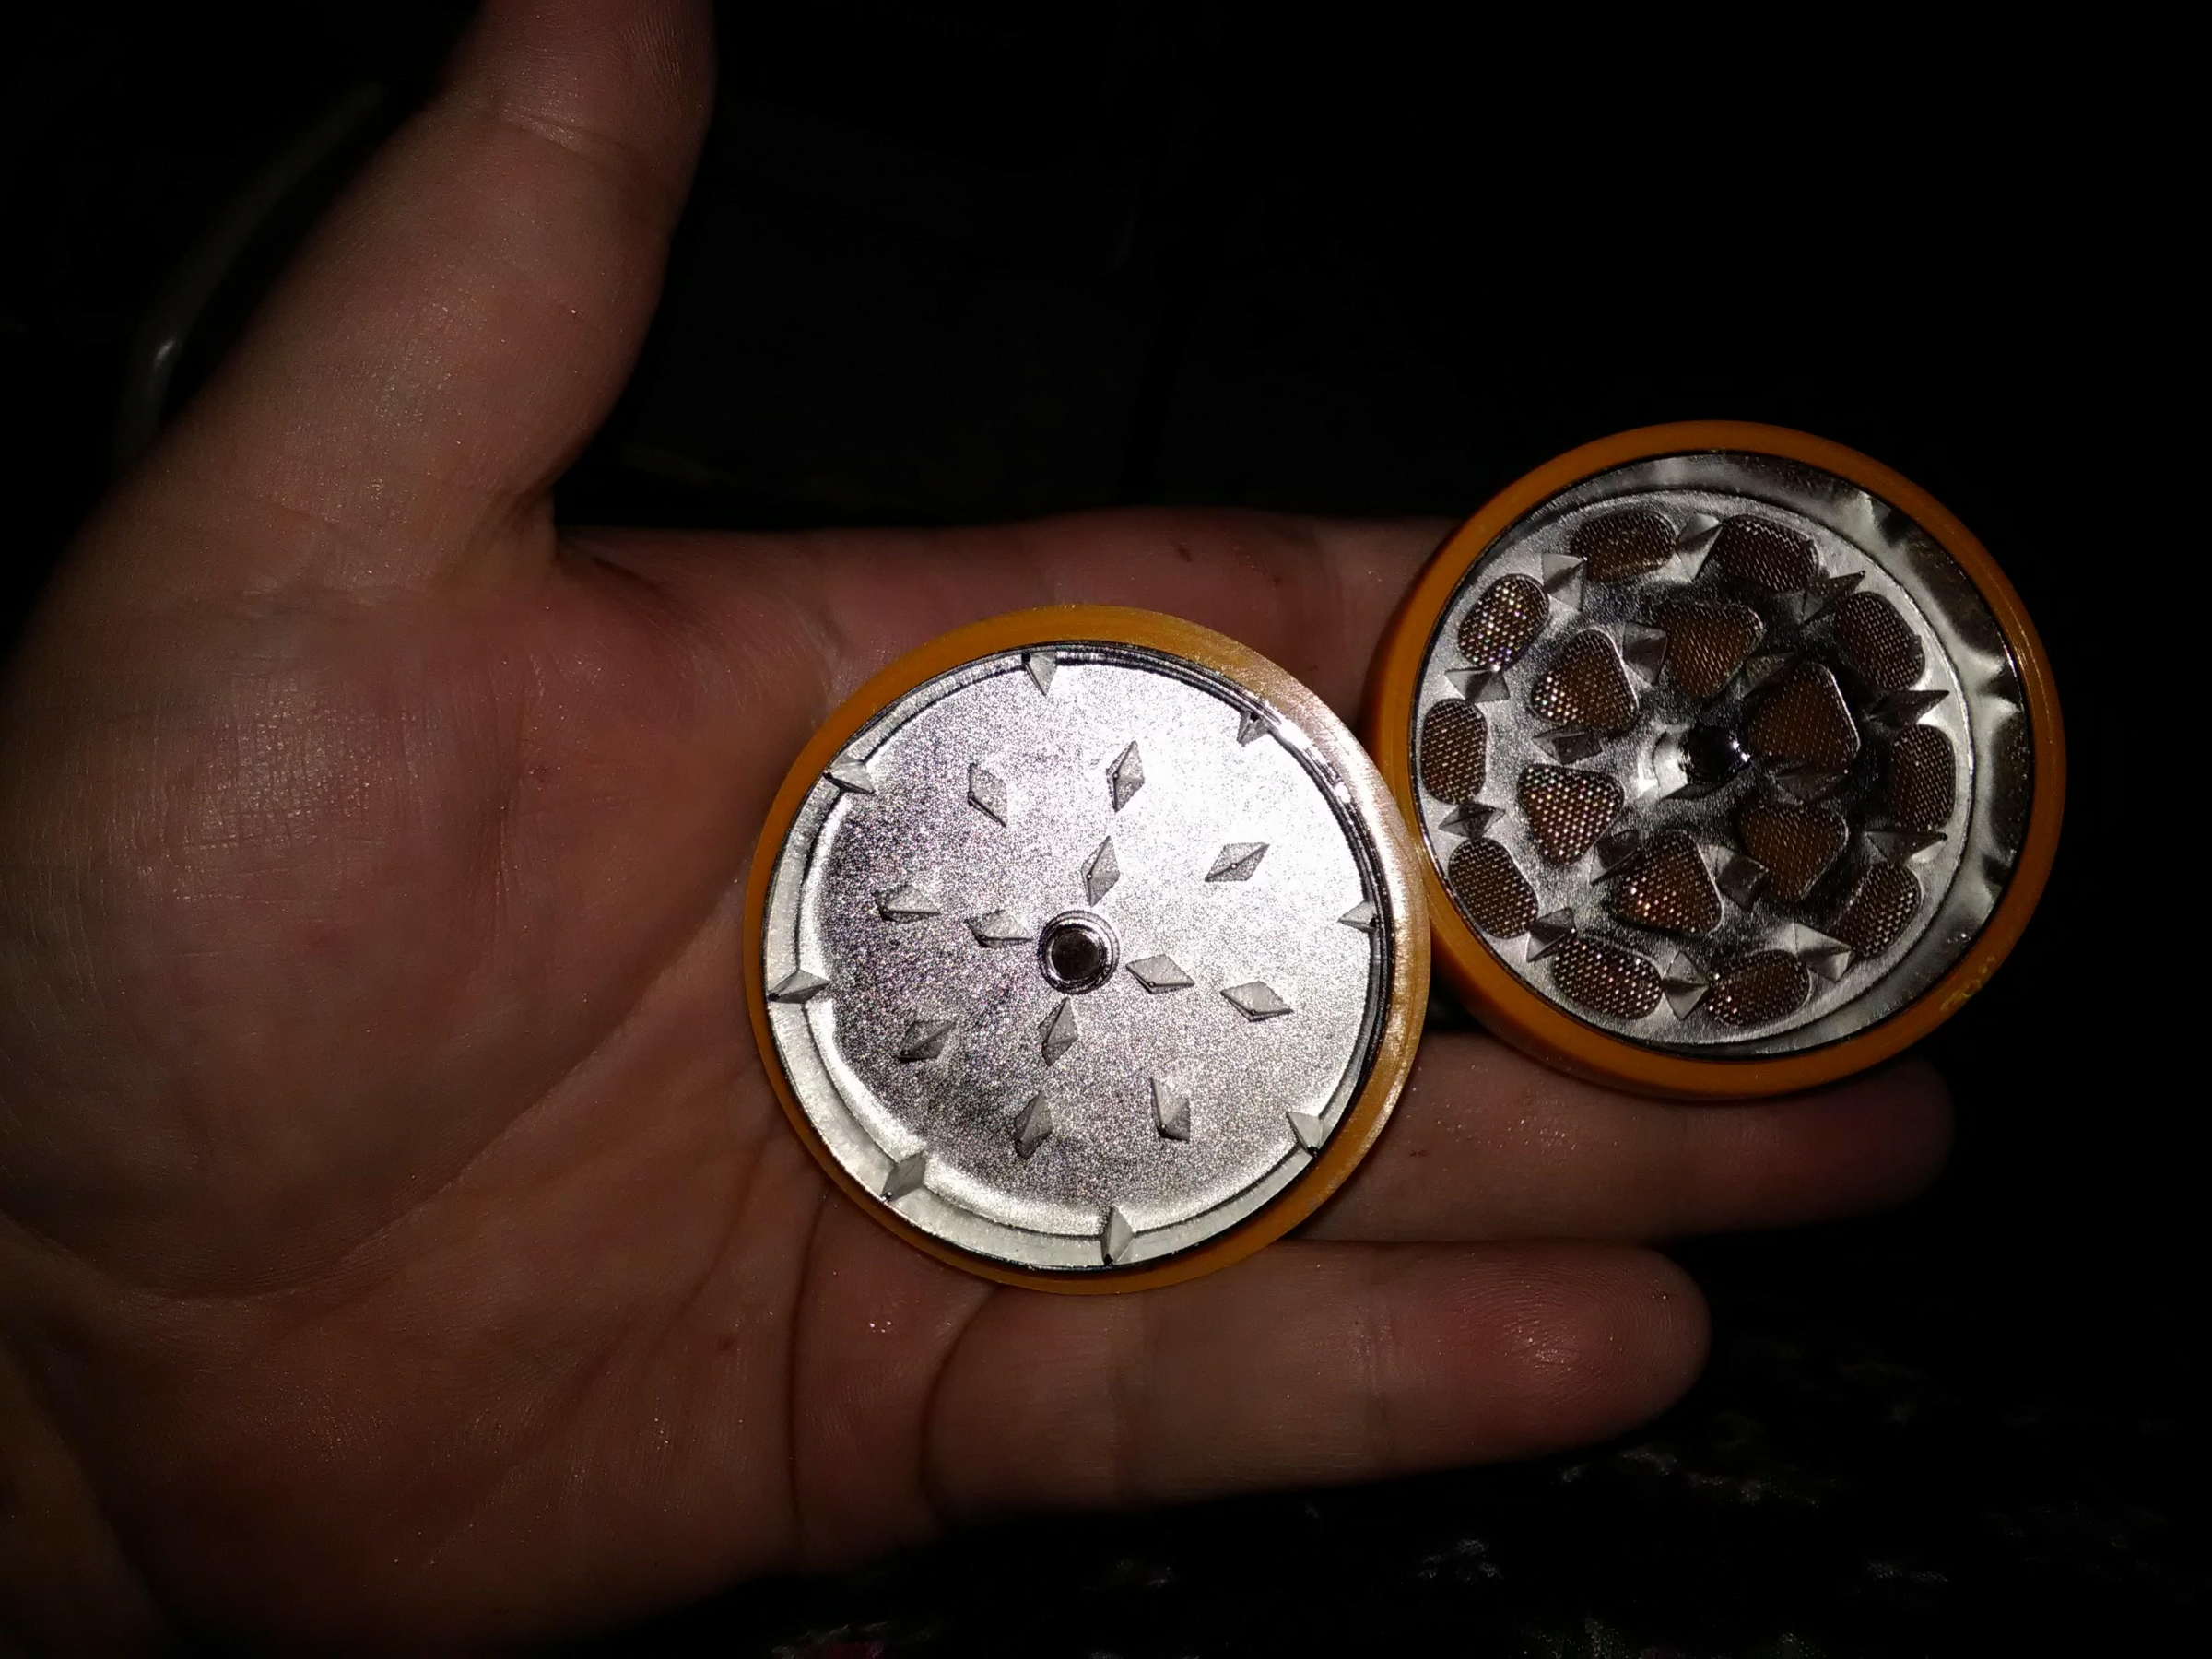 Best grinder I have ever owned!